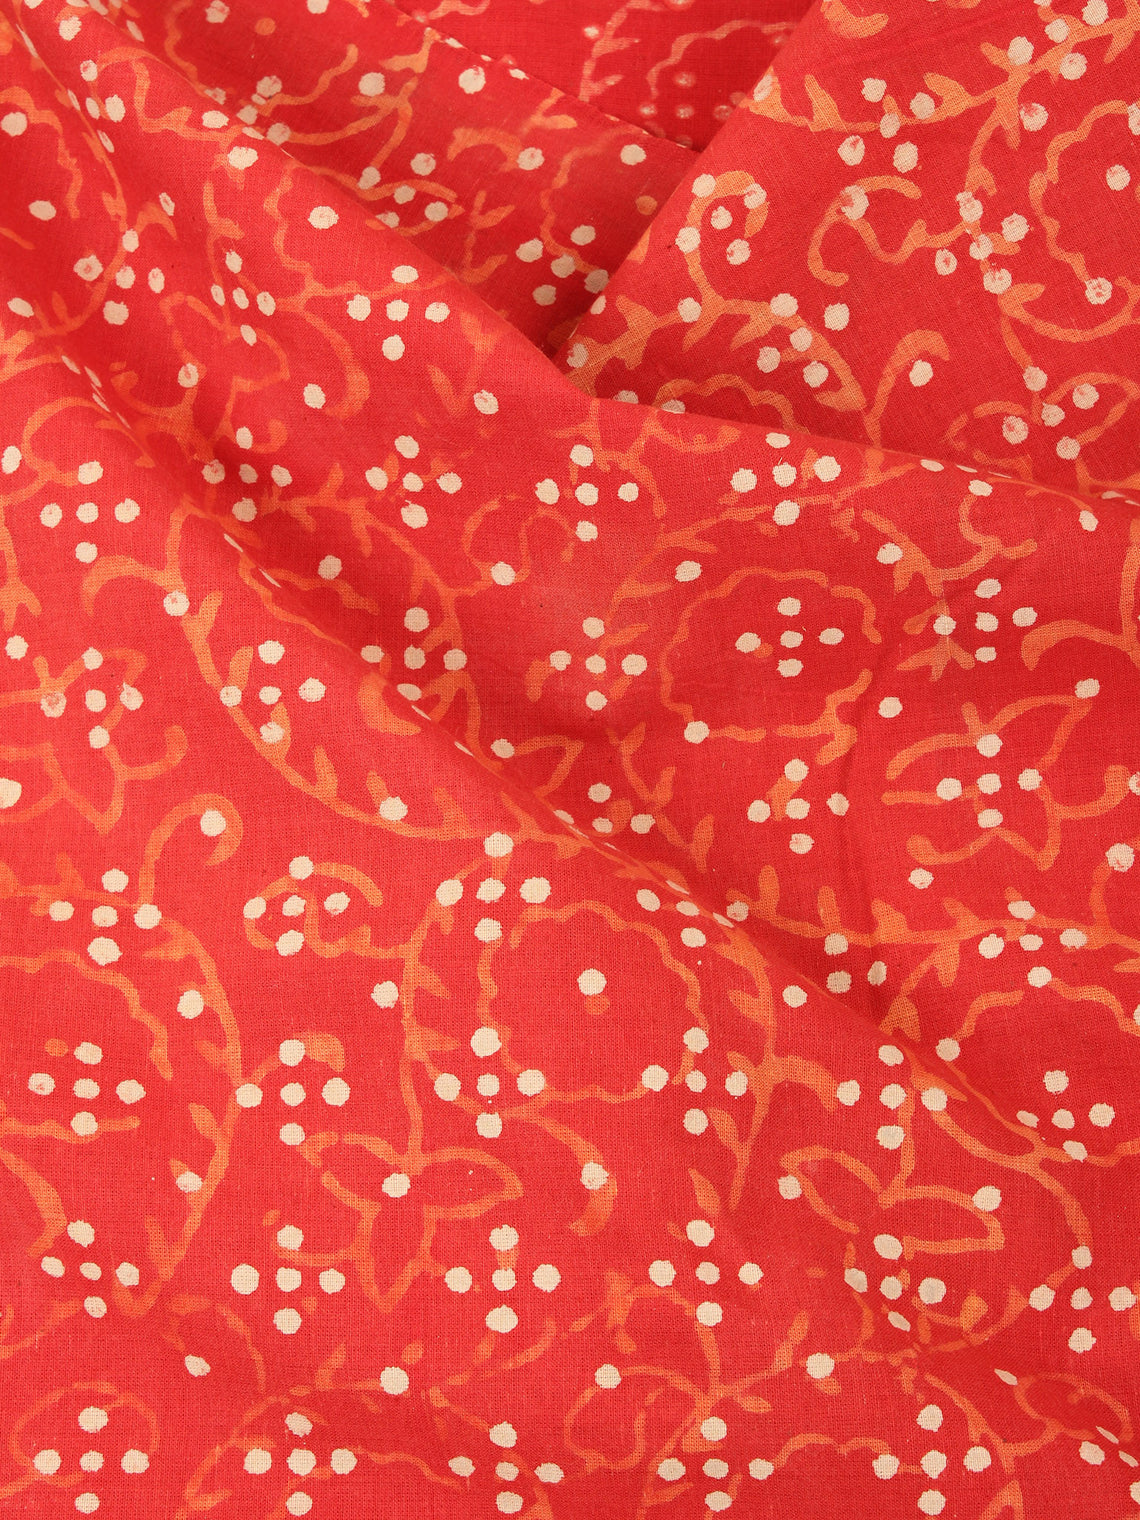 Orange Beige Natural Dyed Hand Block Printed Cotton Fabric Per Meter - F0916231